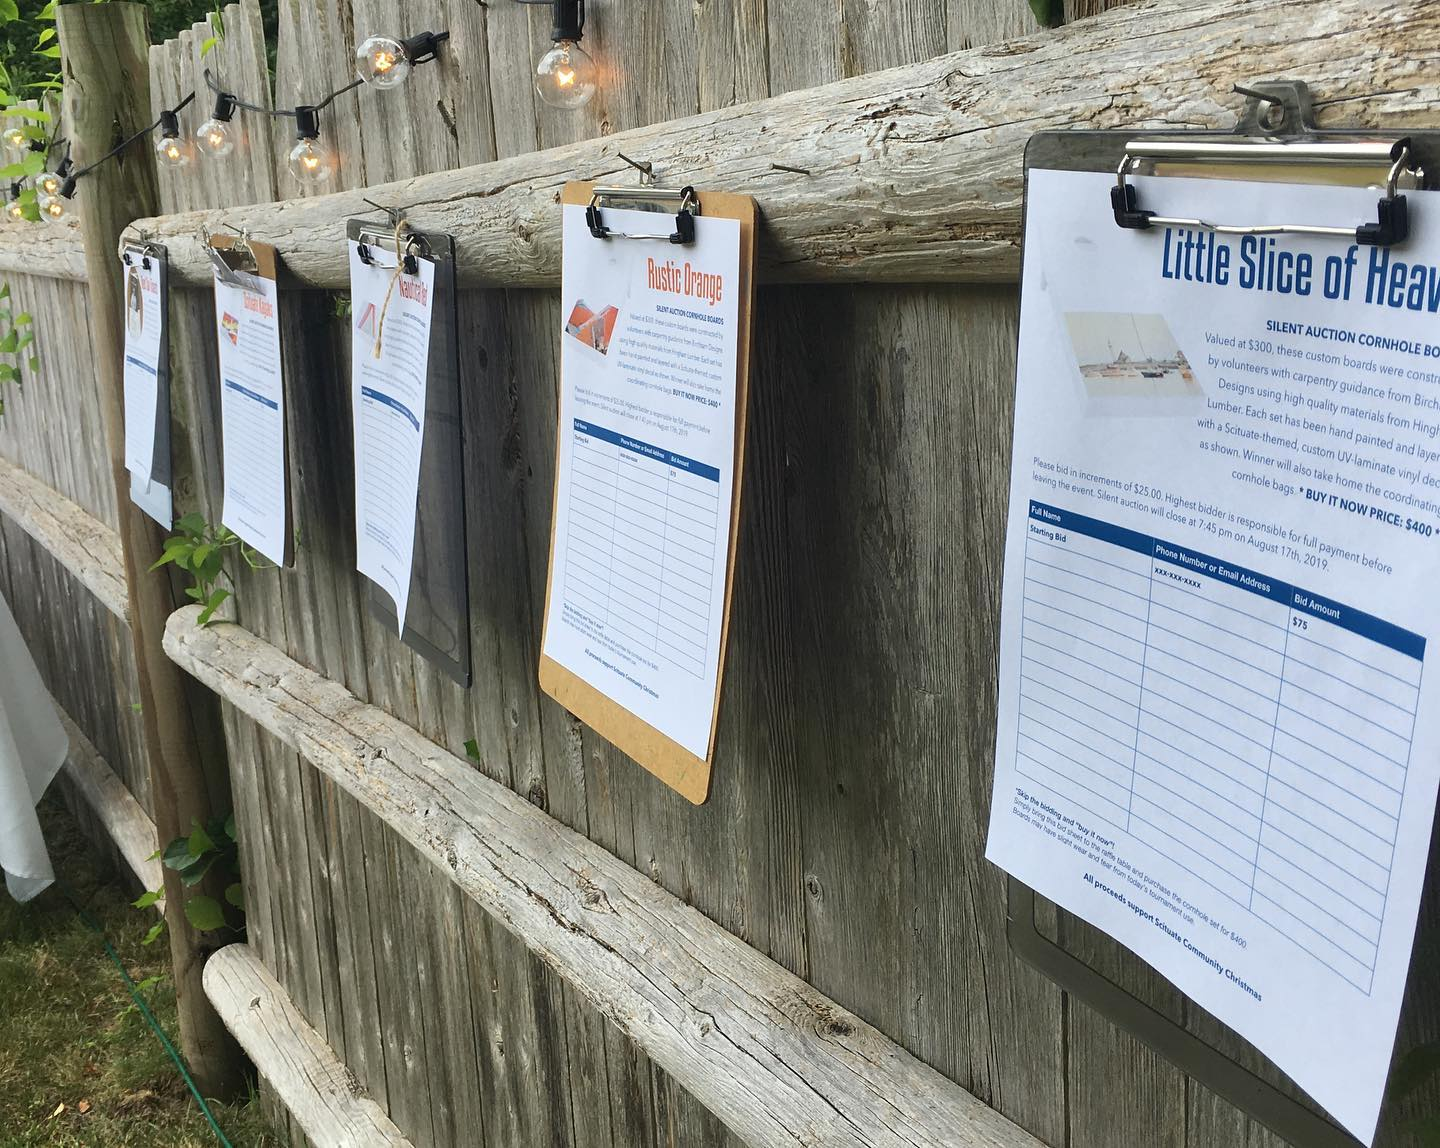 Scituate Community Christmas to hold Cornhole Tournament, Raise Awareness - Wicked Local, July 2019